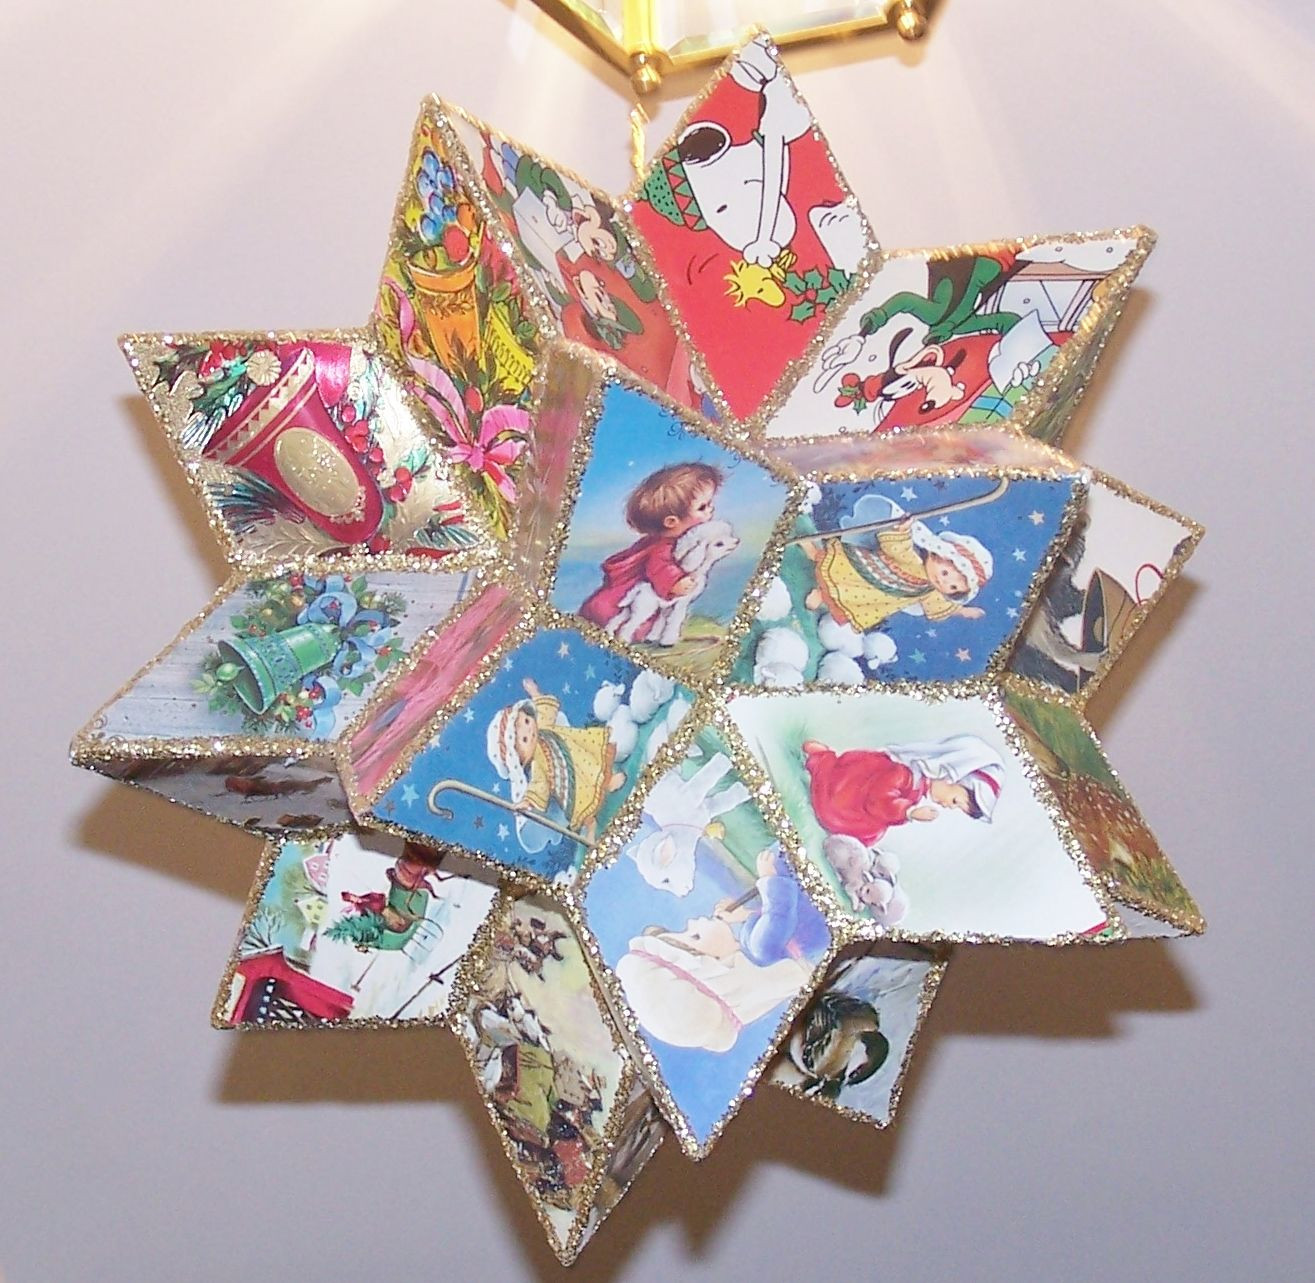 Best ideas about Christmas Card Craft Ideas . Save or Pin A t made by my friend & her husband My most favorite Now.